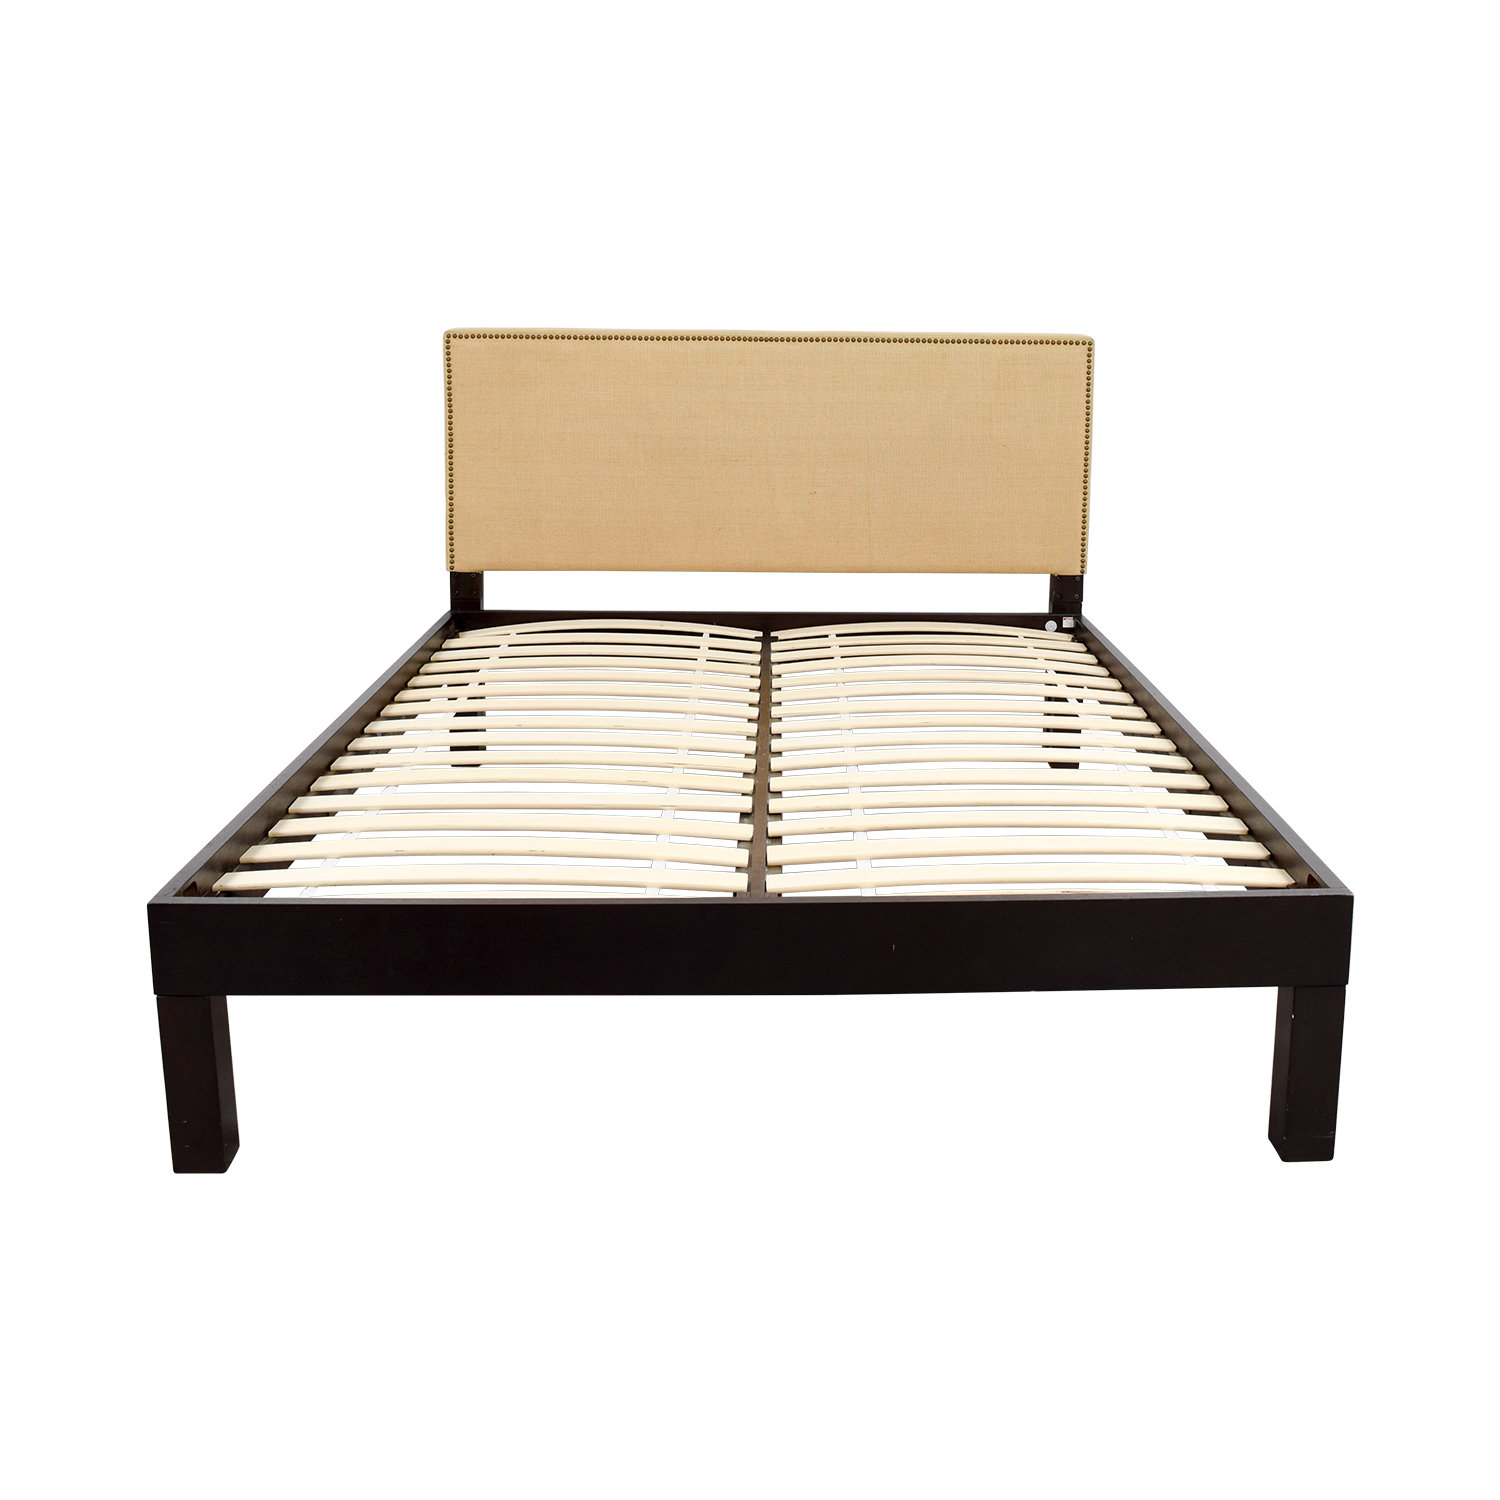 84 Off Ikea Ikea Queen Wooden Platform Bed Frame Beds